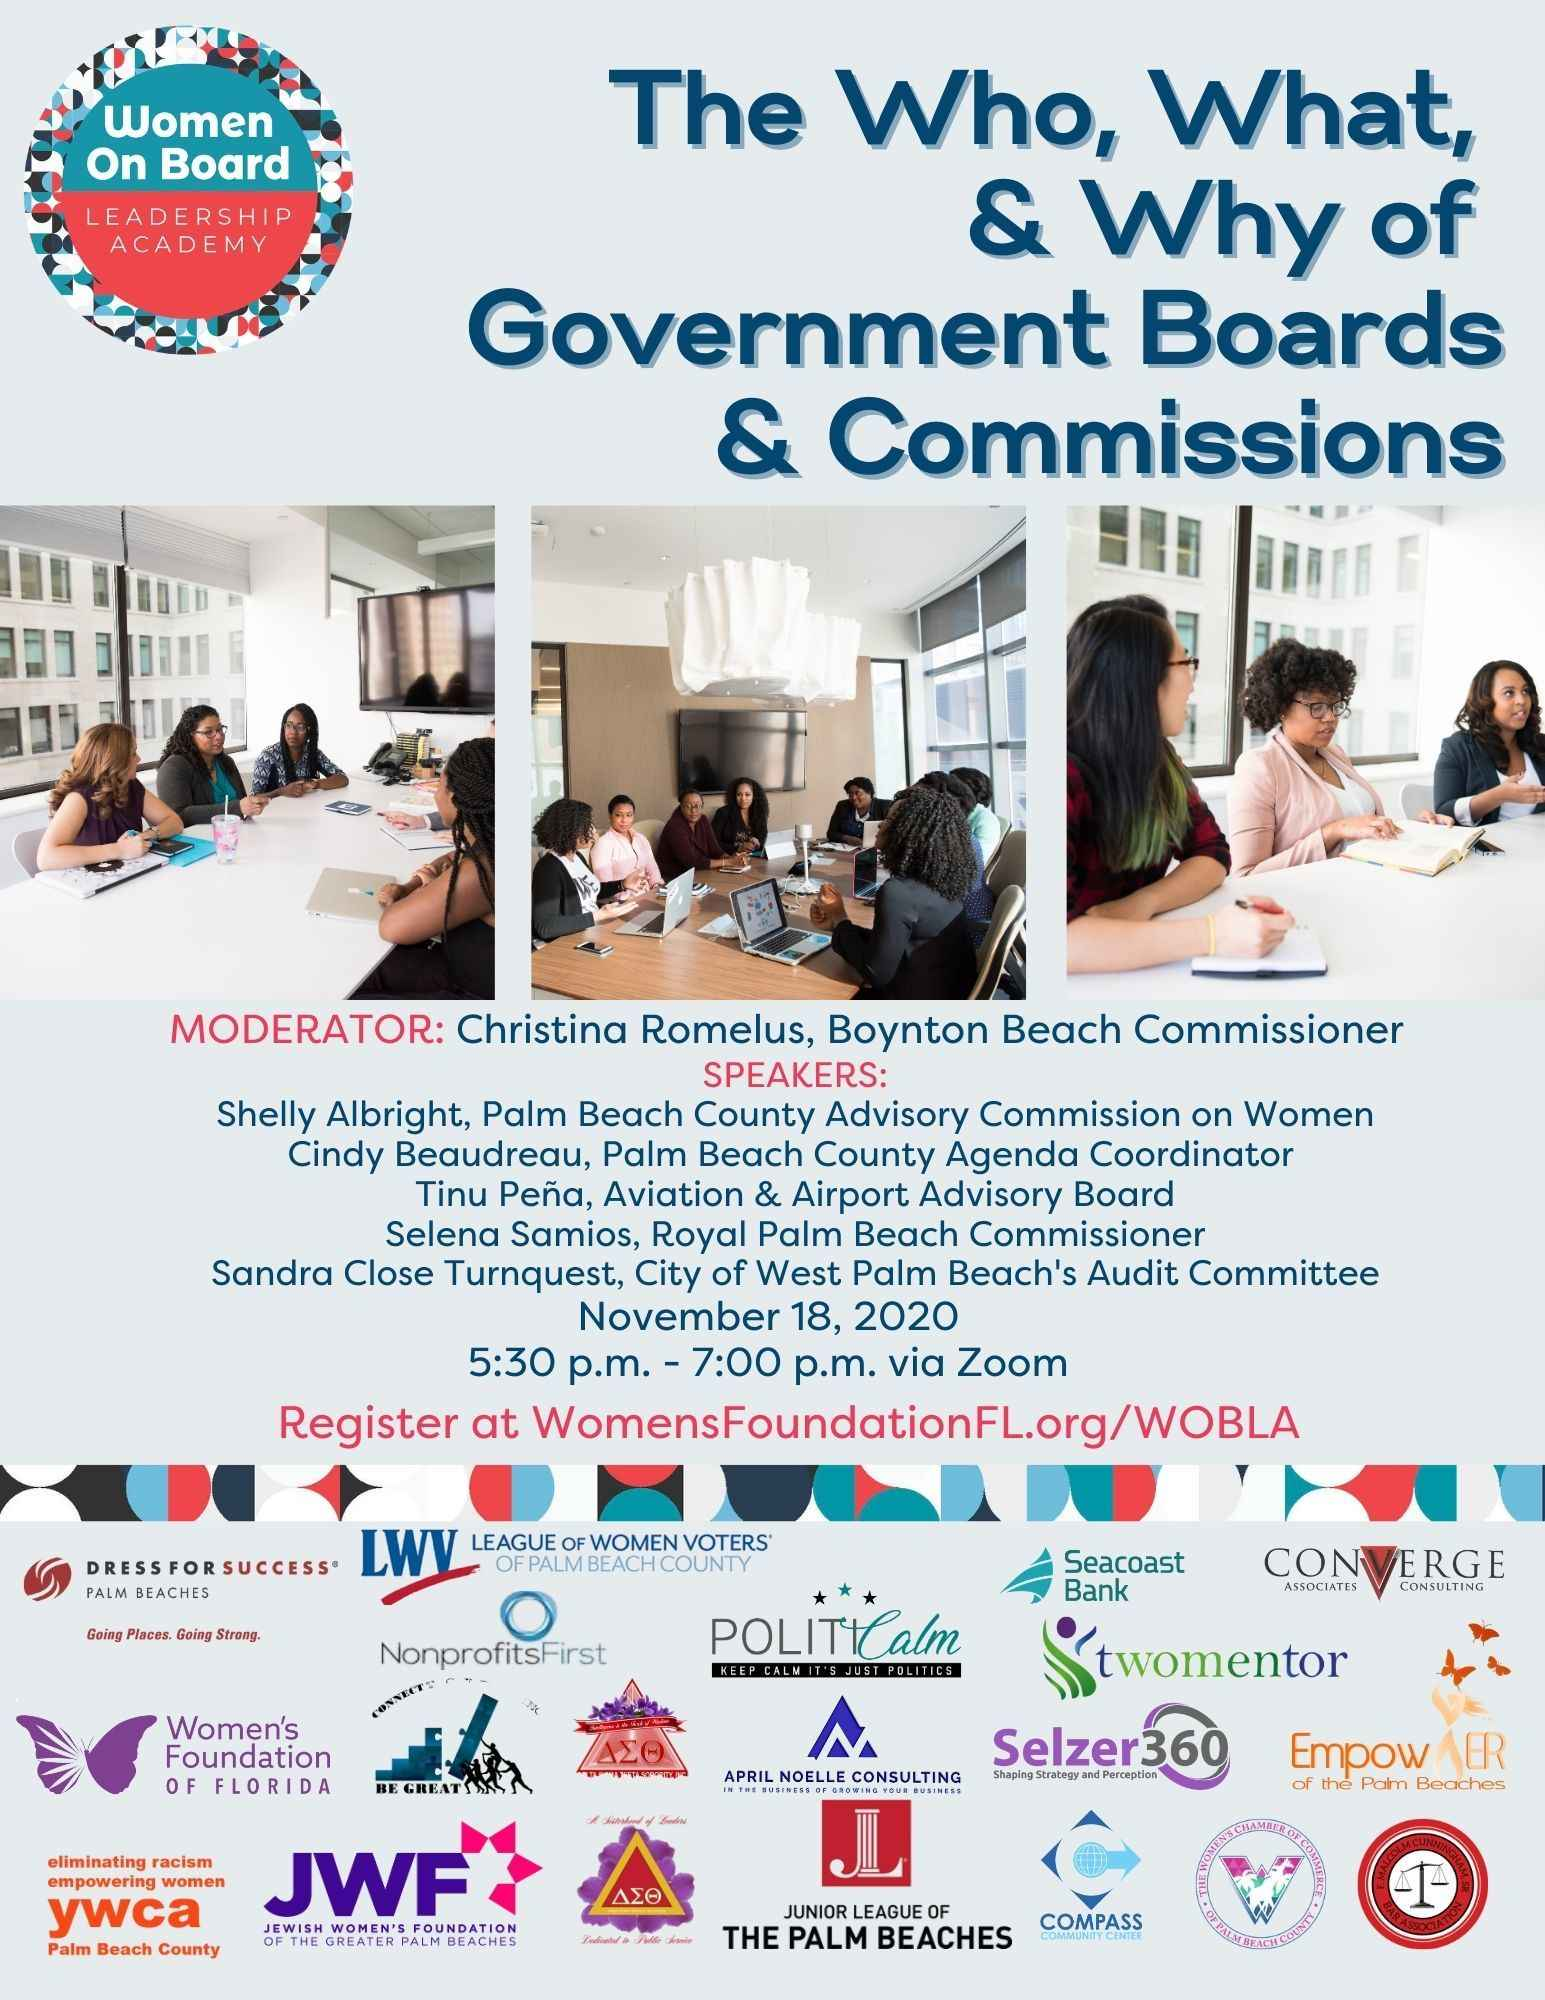 Women on Board Leadership Academy: Government Board Service  image